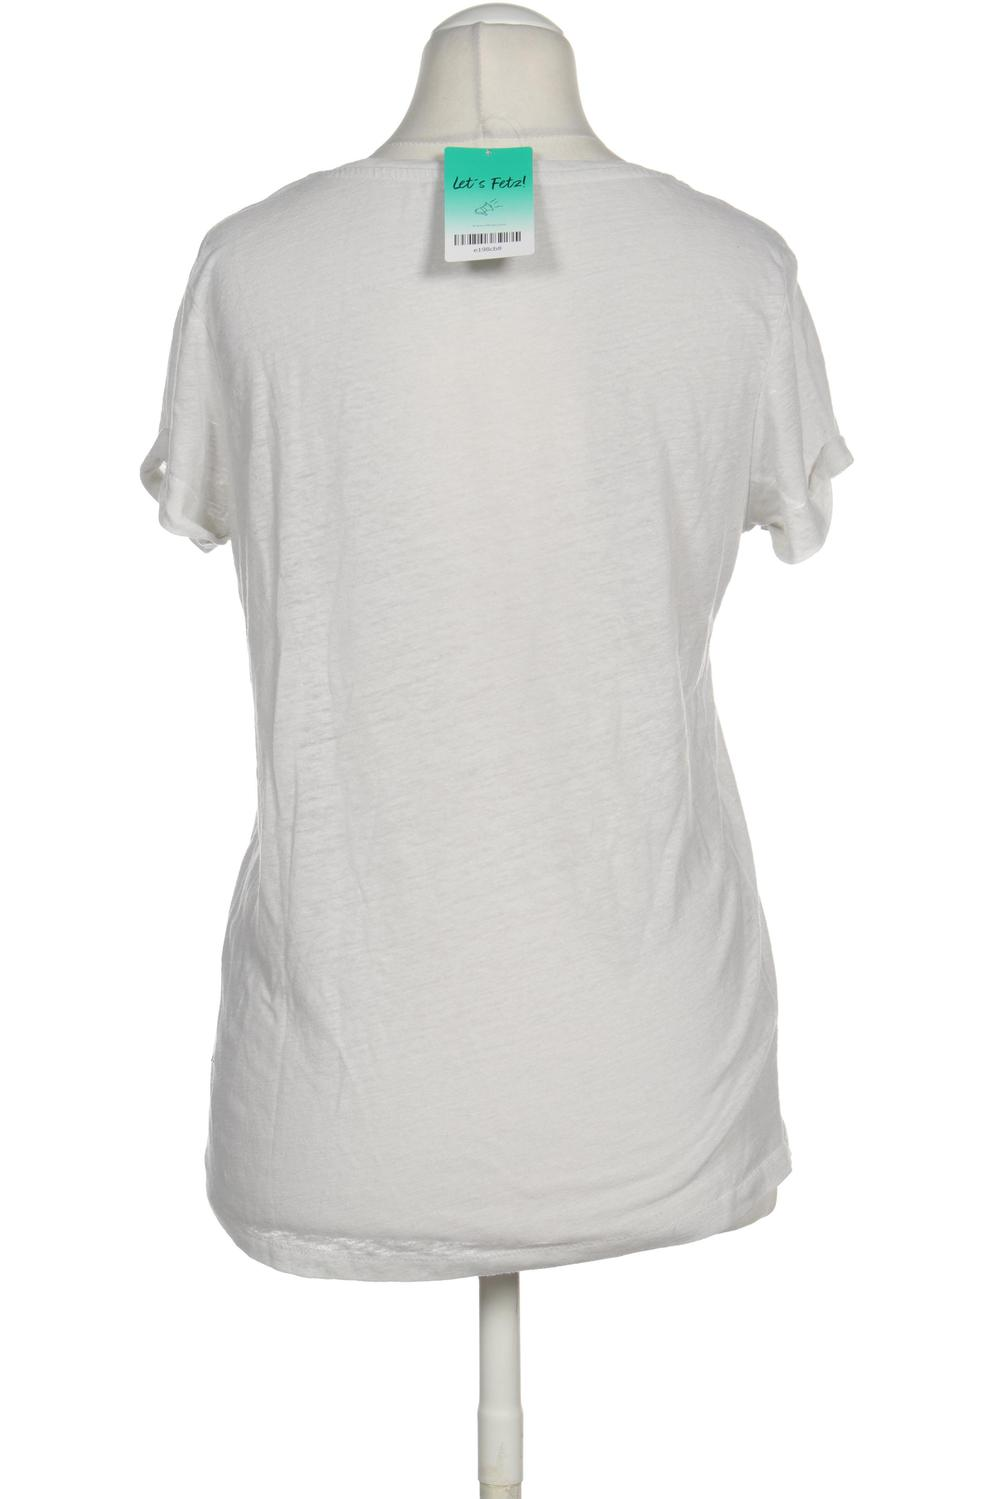 CAMPUS by Marc O'Polo Damen T-Shirt INT M Second Hand kaufen h0A53